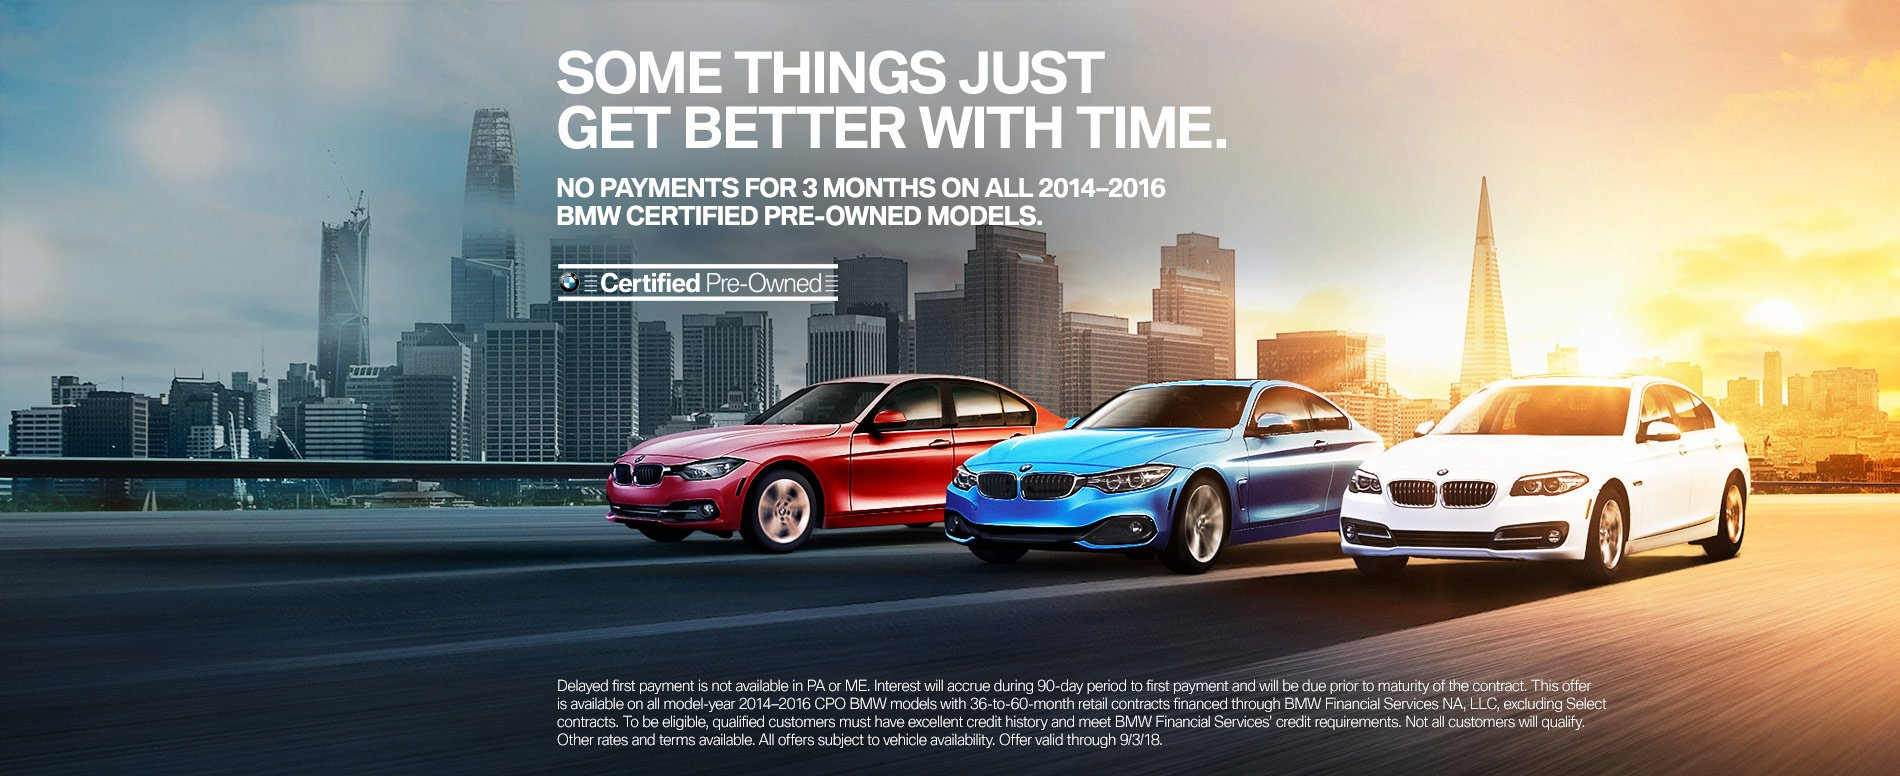 BMW Pre Owned >> No Payment For 3 Months On All 2014 2016 Bmw Certified Pre